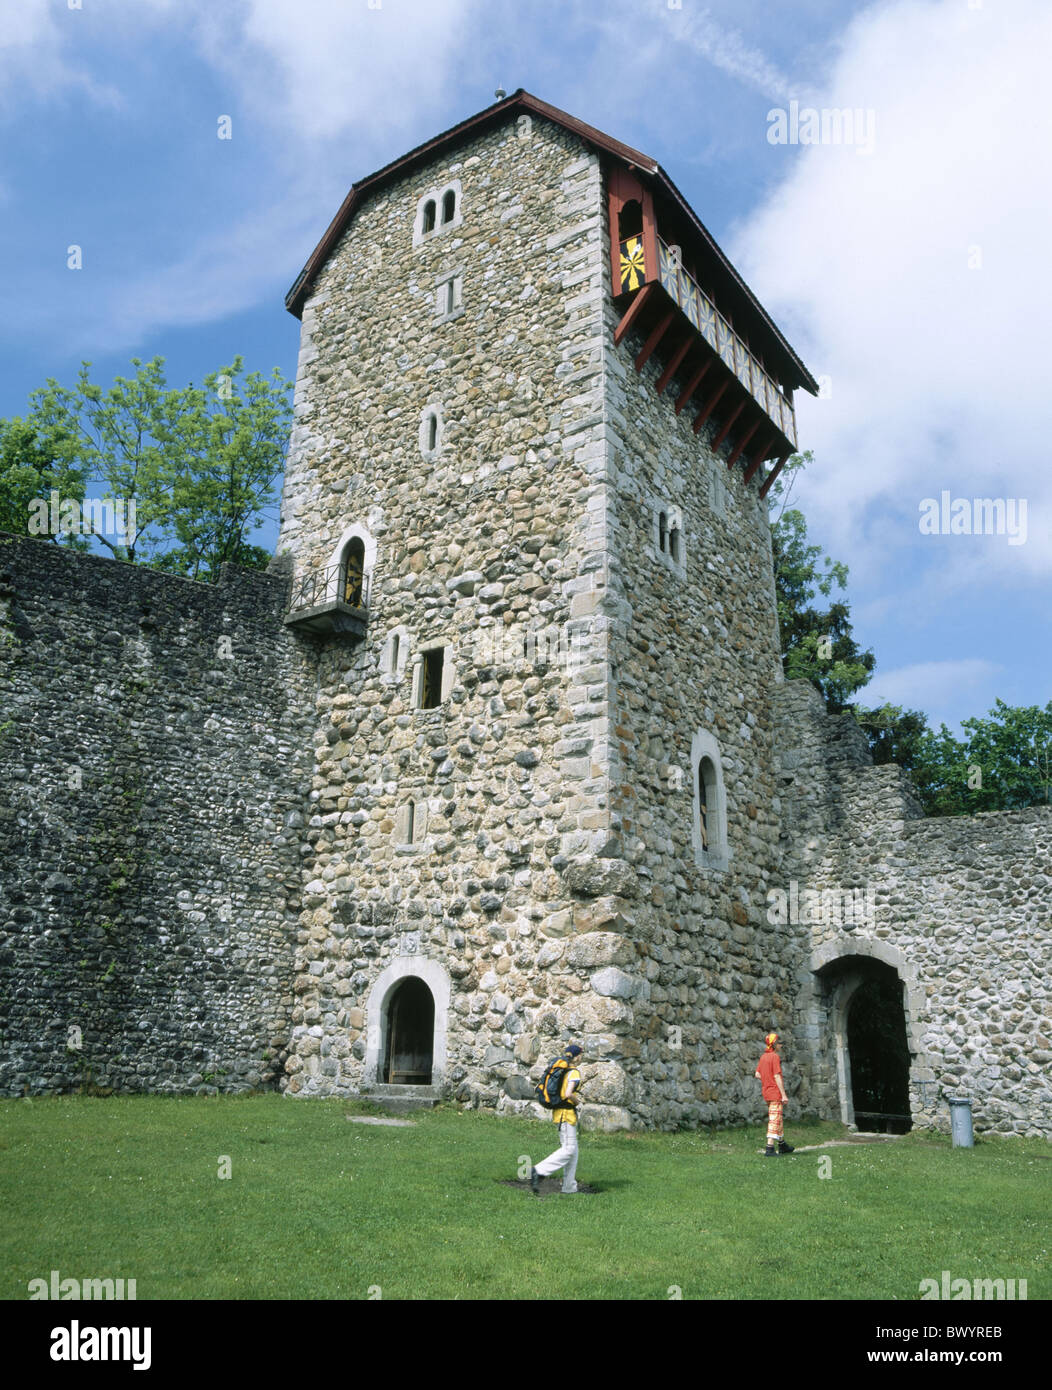 castle historical canton St. Gallen Middle Ages castle Iberg Switzerland Europe Toggenburg tower rook Wat - Stock Image